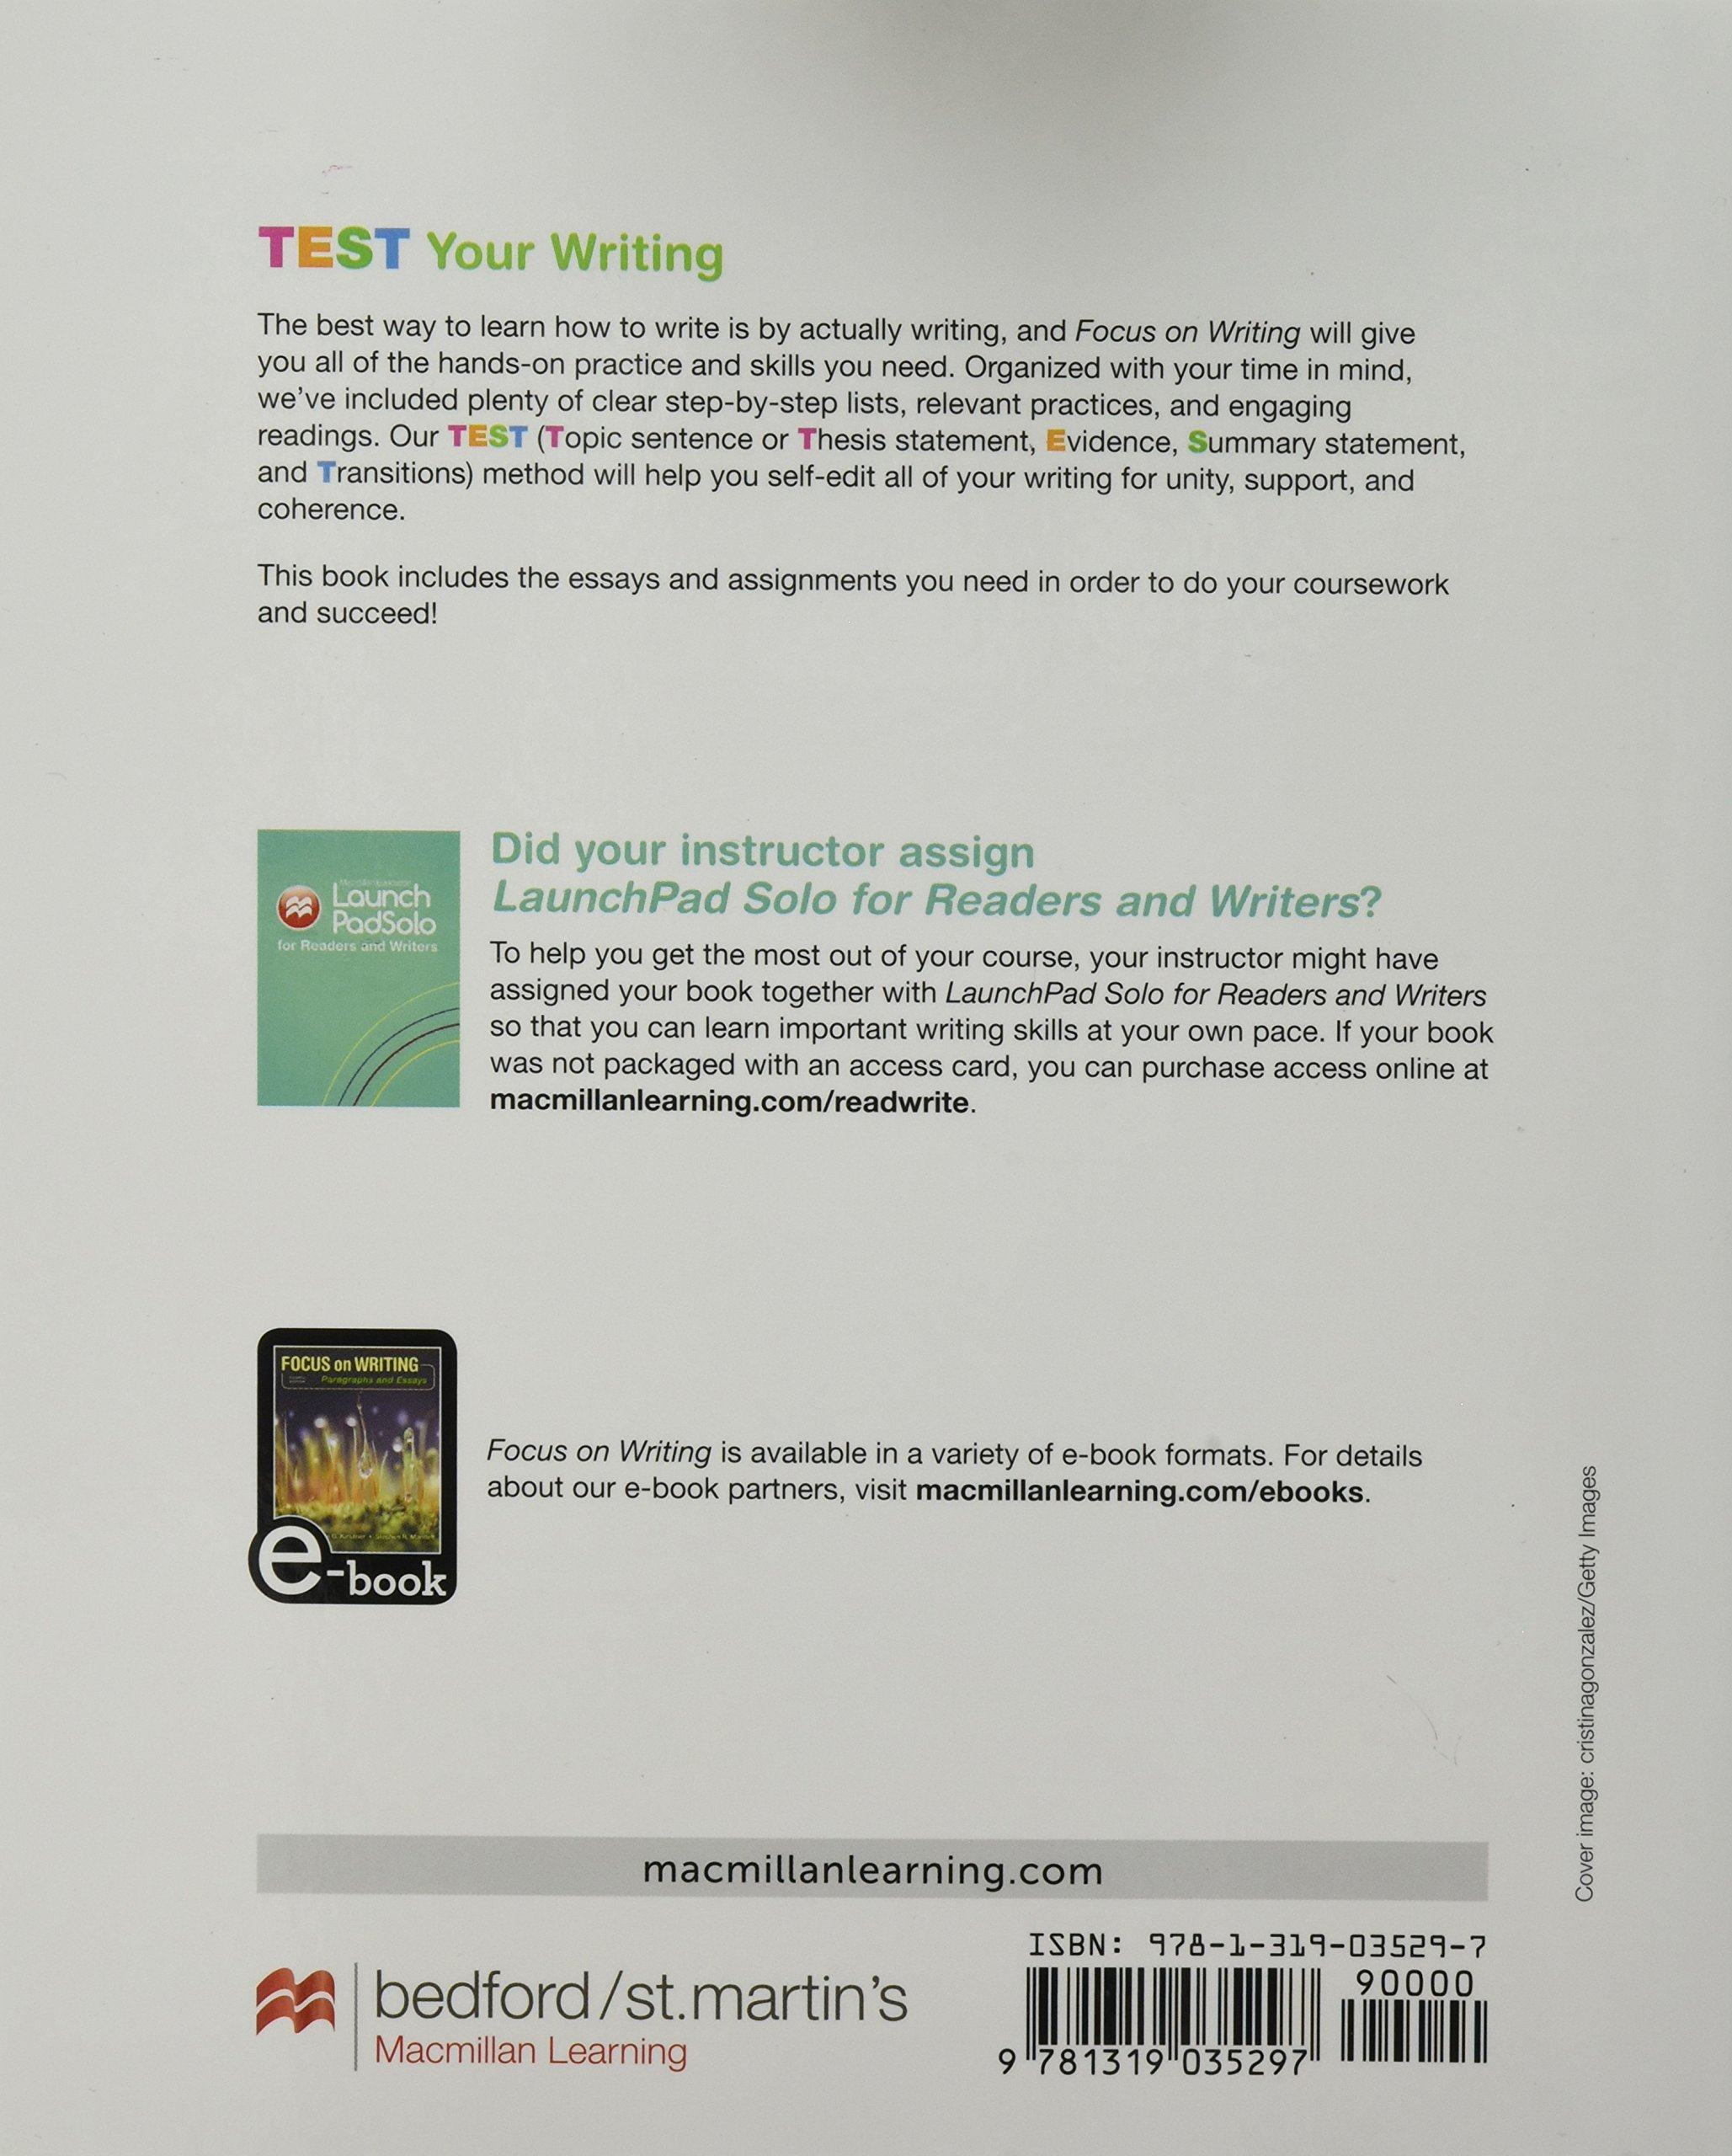 How To Write Proposal Essay Focus On Writing Paragraphs And Essays Amazoncouk Professor Laurie G  Kirszner Professor Stephen R Mandell Bedfordst Martins   Books Topics For Synthesis Essay also How To Write A Essay Proposal Focus On Writing Paragraphs And Essays Amazoncouk Professor  Health Care Reform Essay